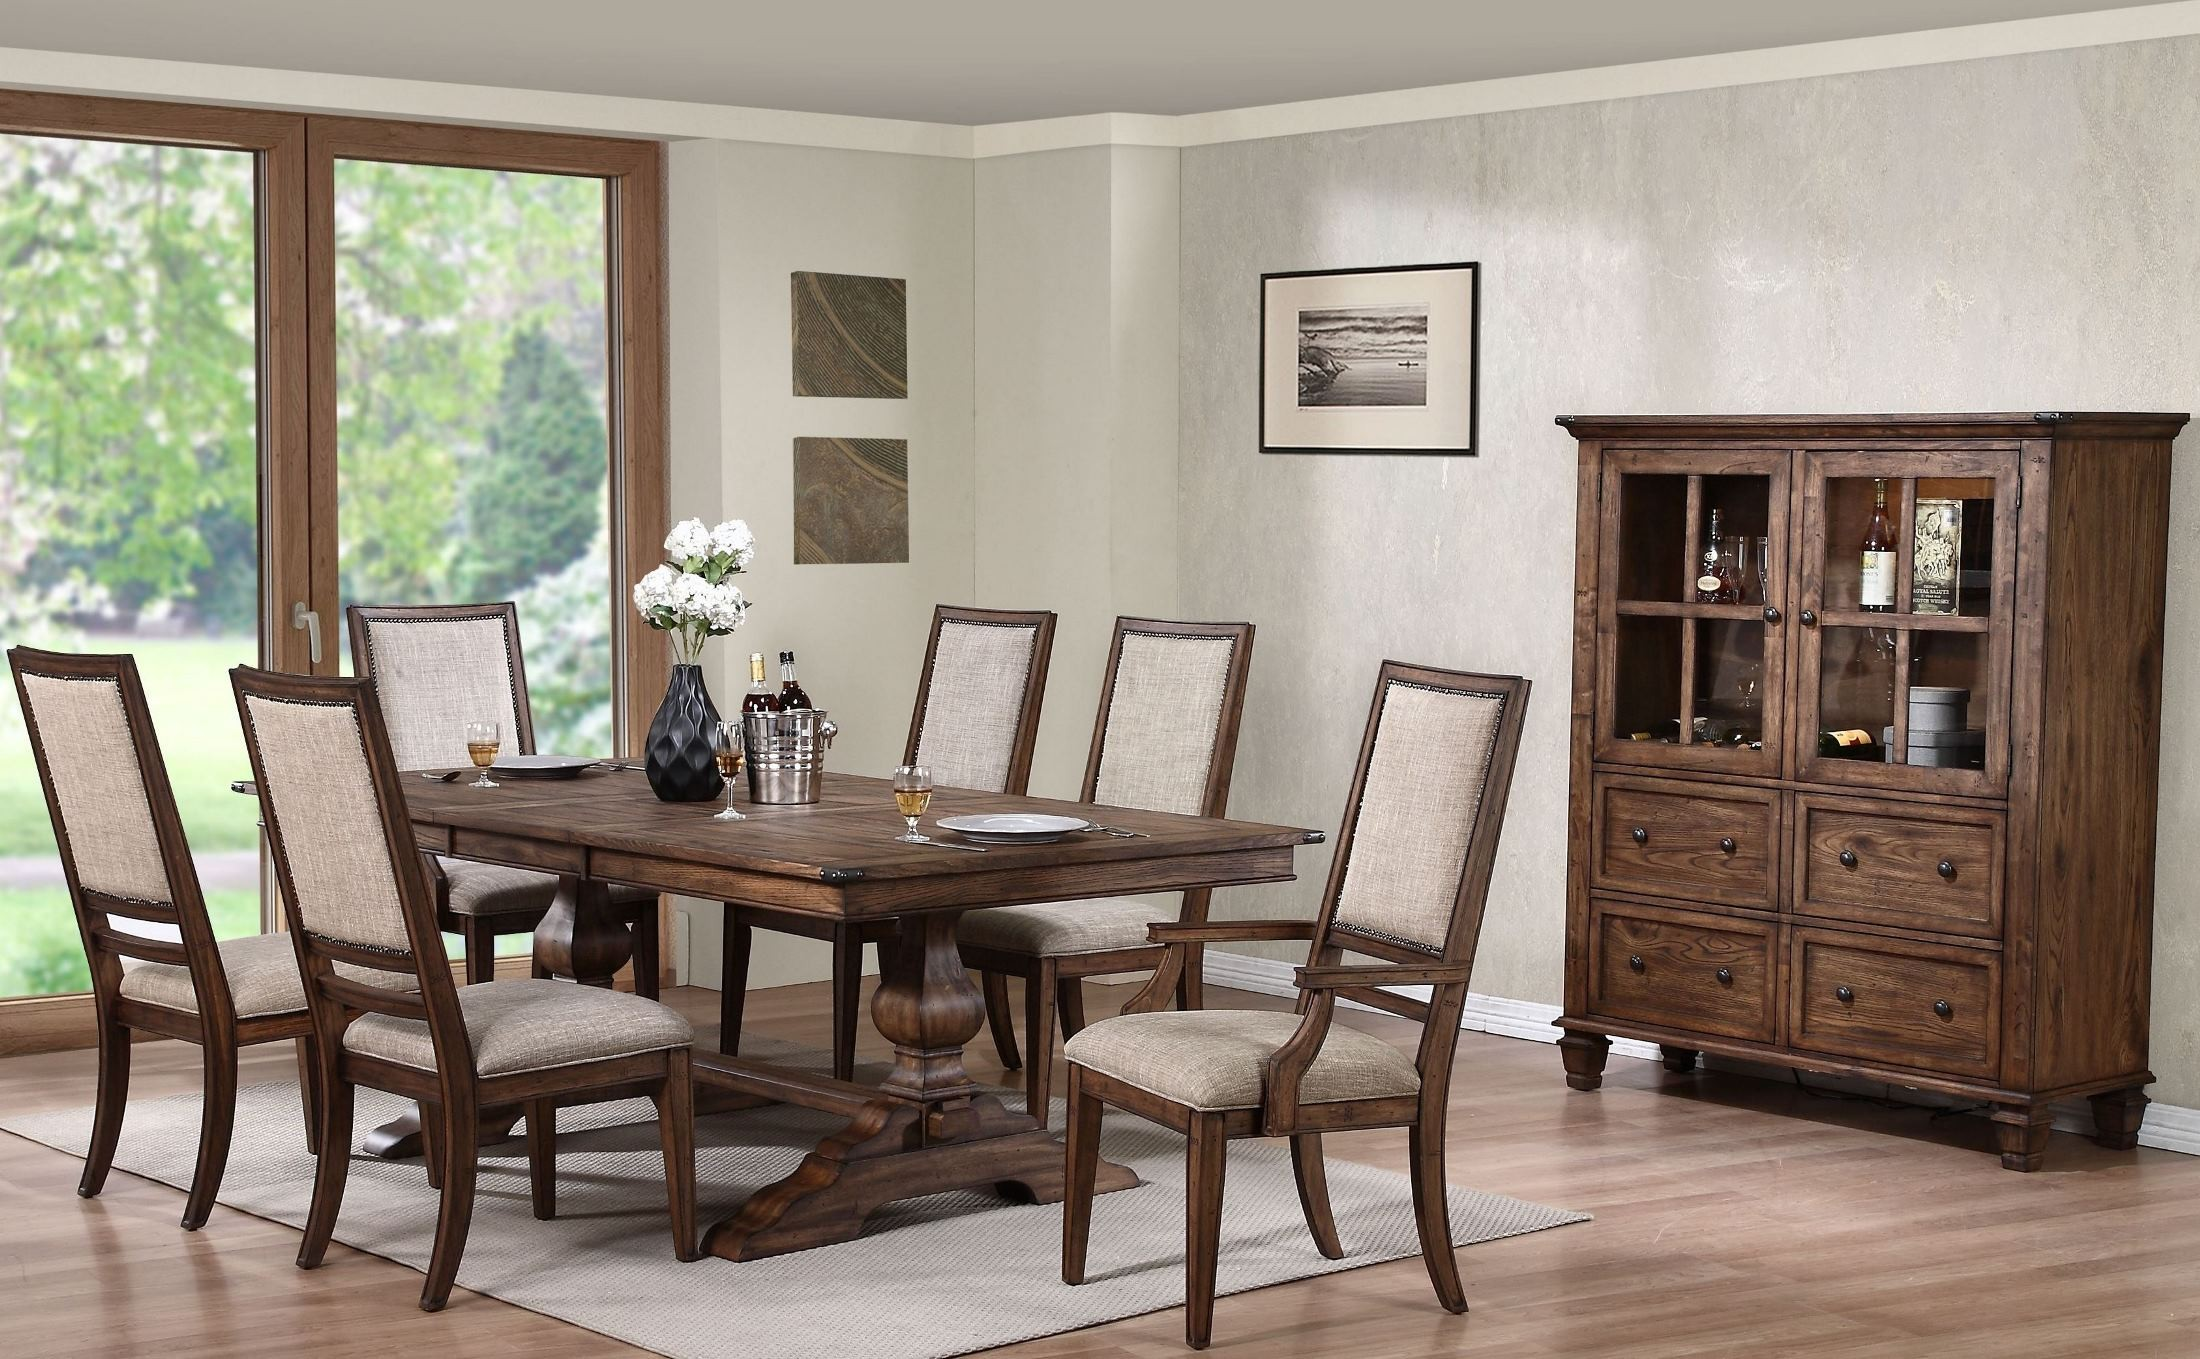 sutton manor distressed oak manor extendable dining room set d1505